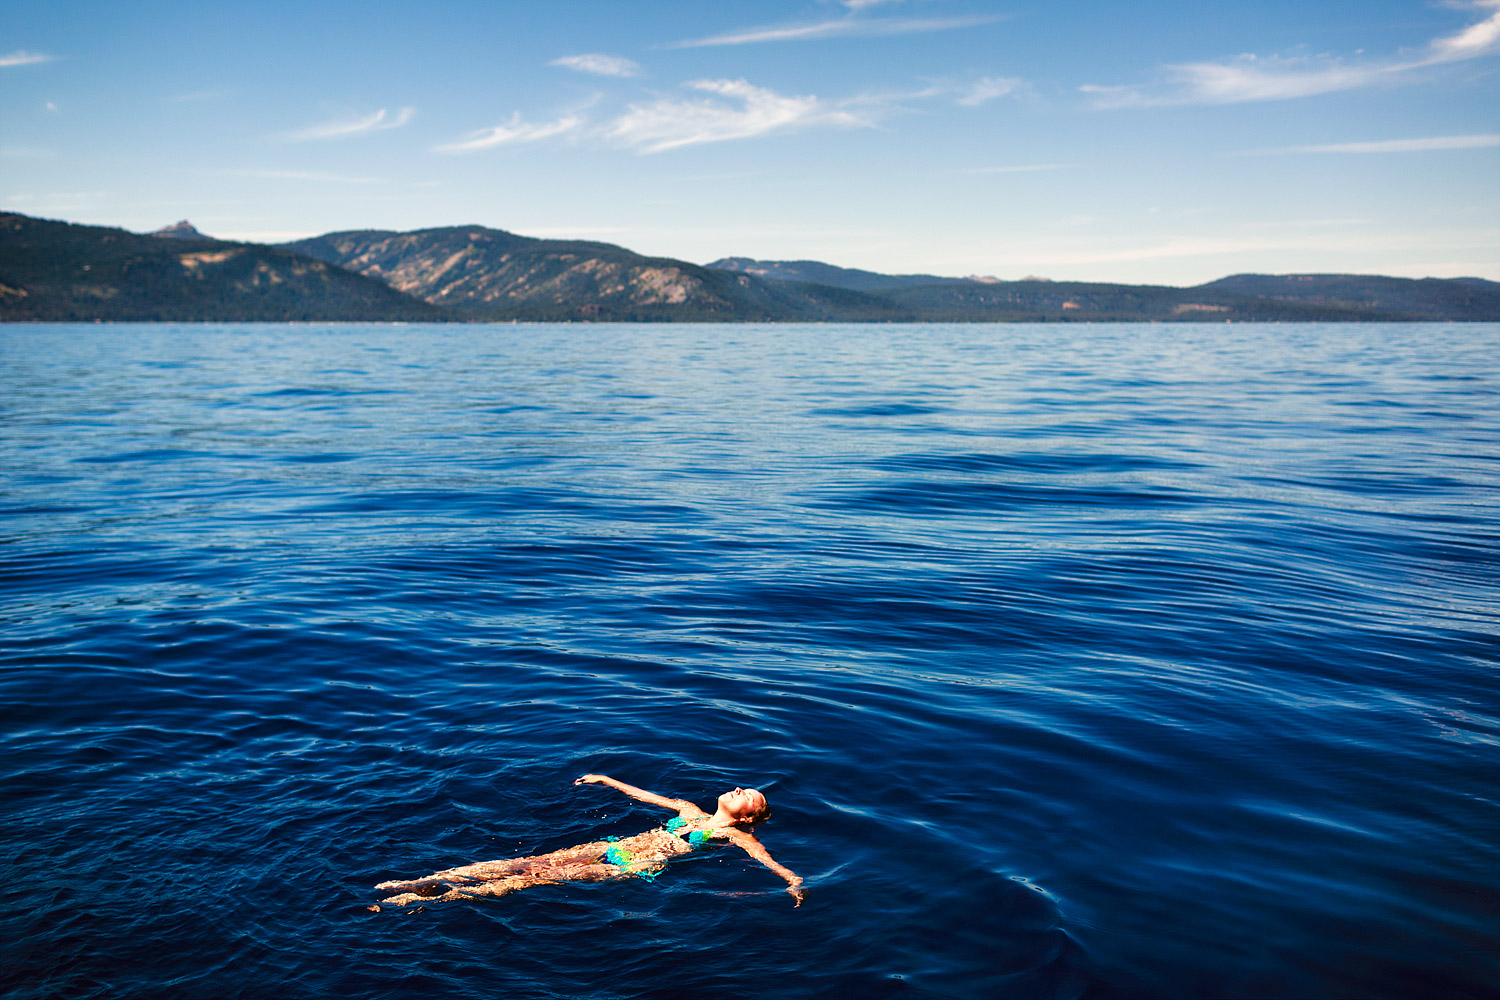 Floating in the middle of Lake Tahoe, Nevada.